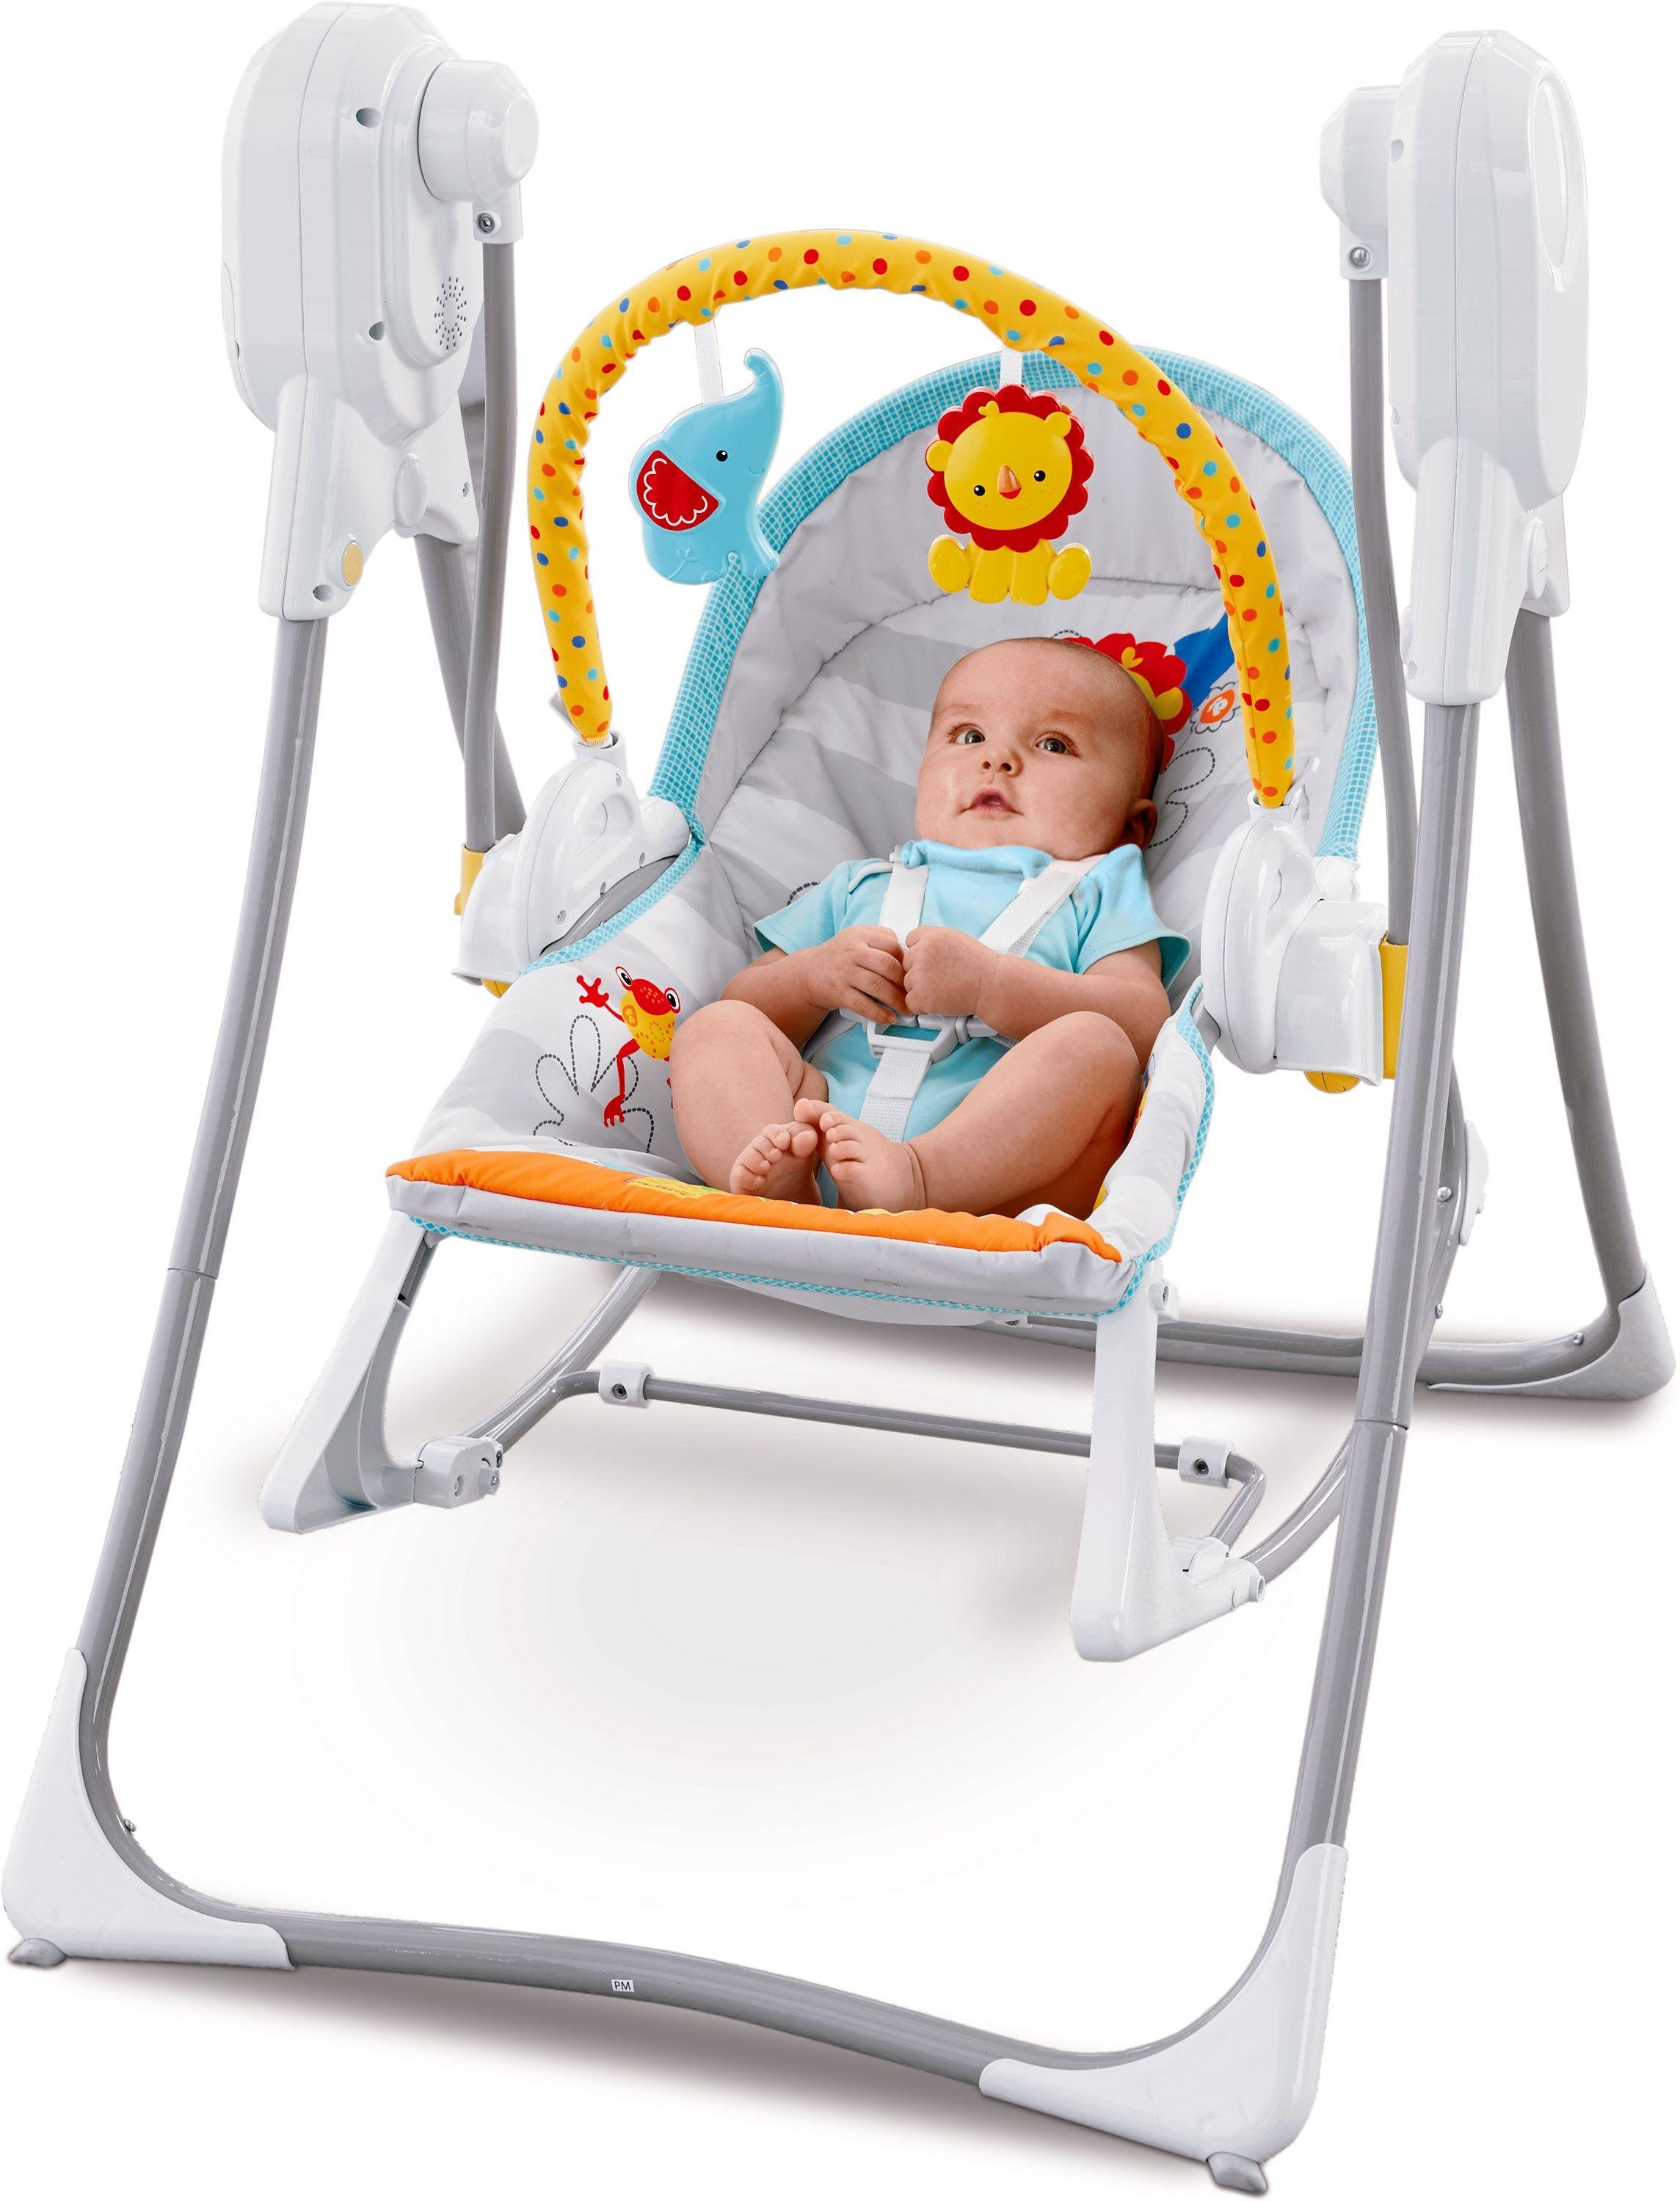 argos baby bouncer chair reclining patio chairs 746775309190 upc fisher price 3 in 1 swing n rocker